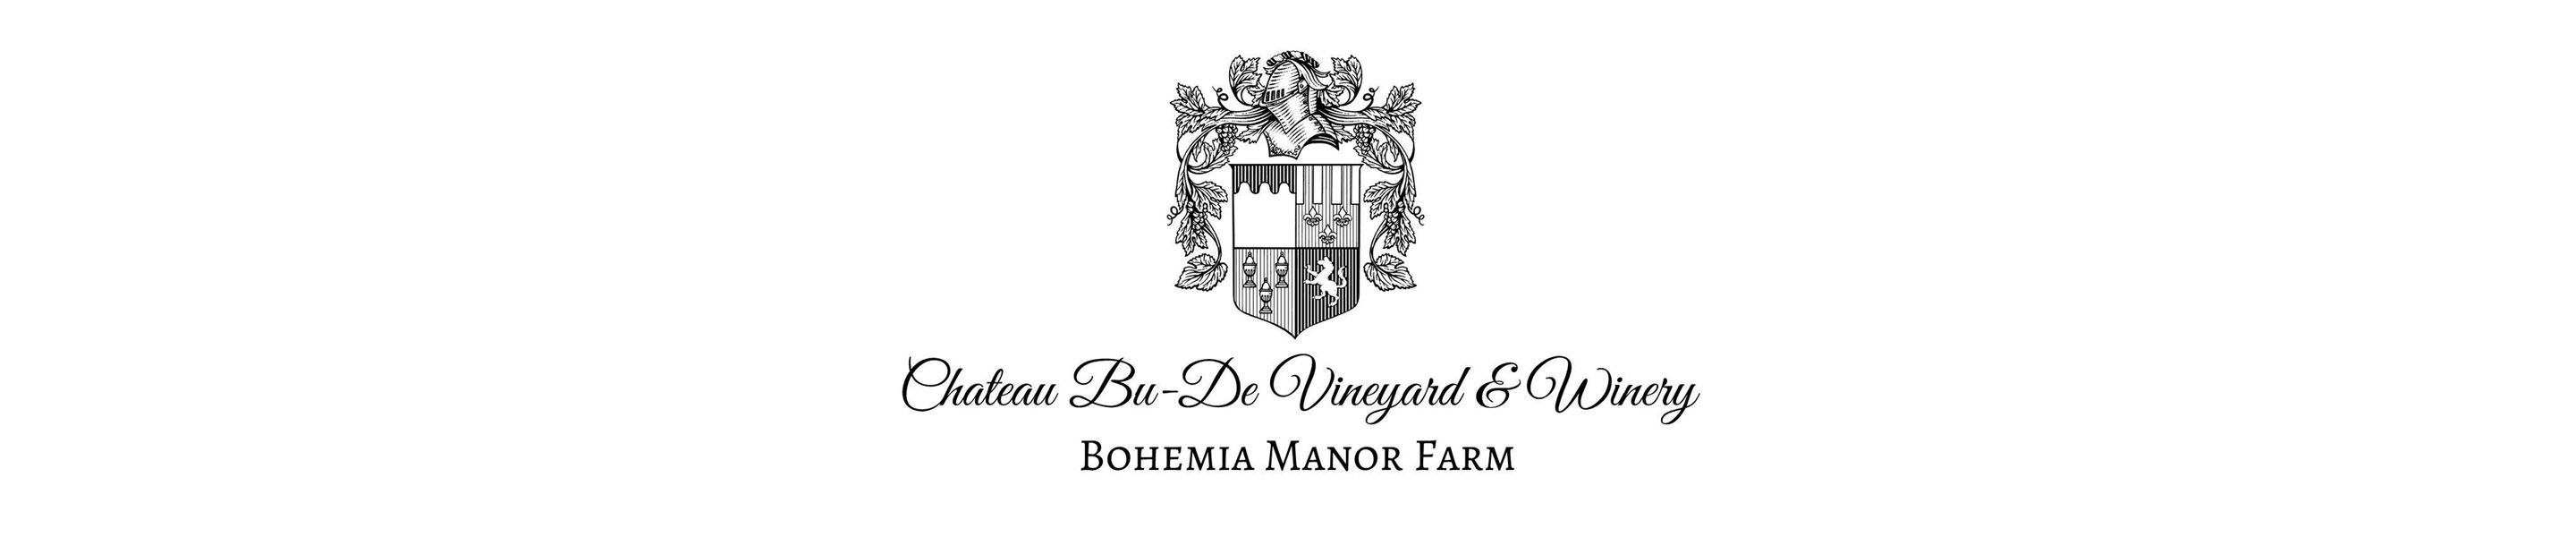 At Chateau Bu-De Vineyard & Winery, Bohemia Manor Farm™, we strive to produce the finest Maryland wines, while staying true to the terrain & sustainable process of winemaking. The passionate & talented winemaker, Jacques van der Vyver, produces the highest quality wines using old world and new world techniques in a state of the art facility. Finding innovative methods to maintain the natural and pure form of the grapes enables Chateau Bu-De to make the finest Maryland Wines.